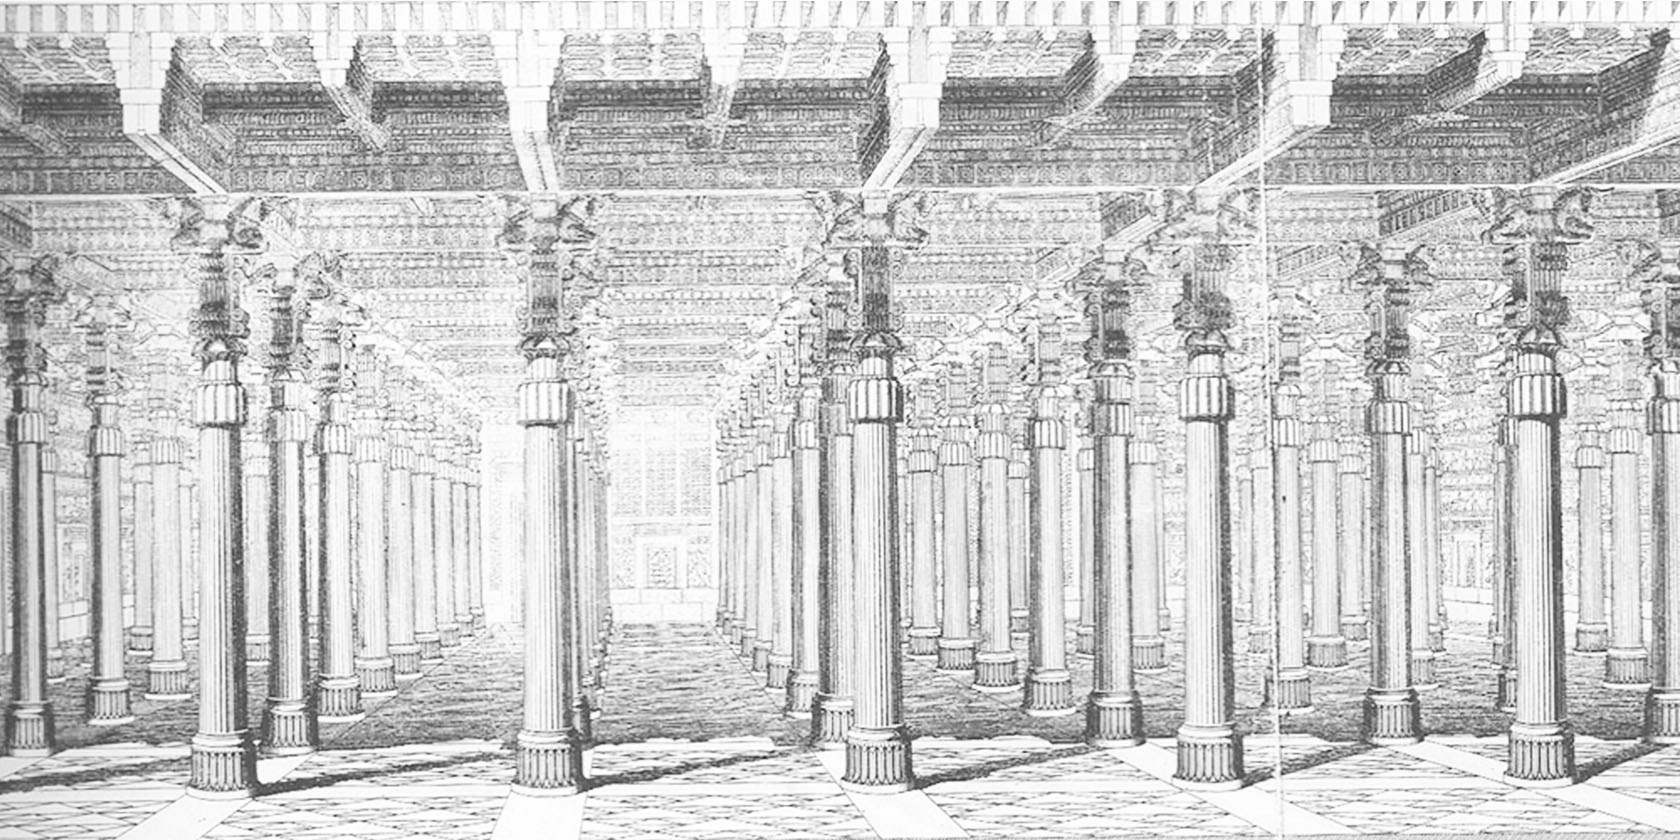 An artist's rendering of what Persepolis might have looked like. Note the ornement at the tops of the columns and the eastern-asian influences in the manners the support beams rest on them.